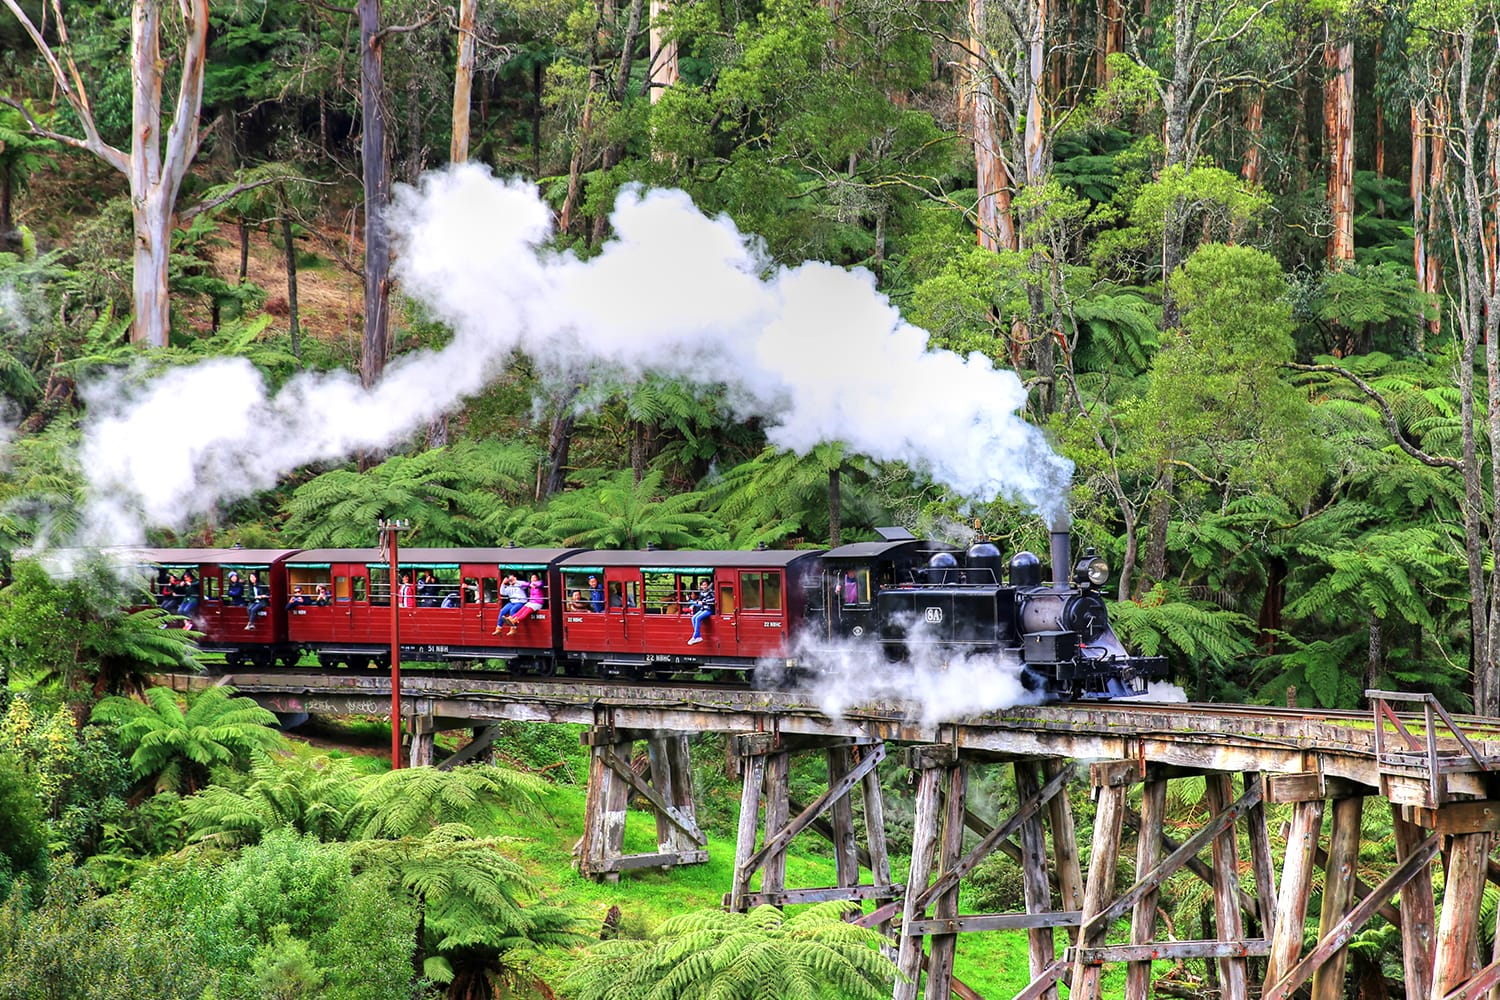 The Puffing Billy narrow gauge steam train crossing the Belgrave trestle bridge in The Dandenong Ranges, Australia